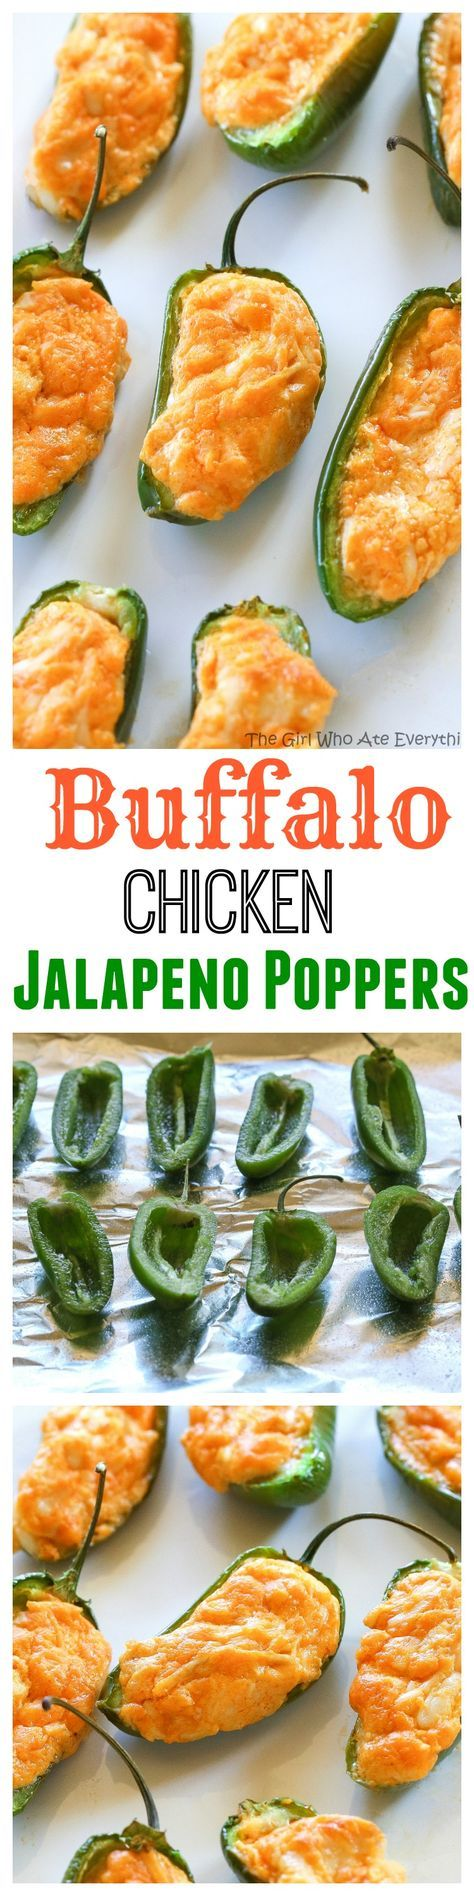 Buffalo Chicken Jalapeno Poppers - buffalo chicken dip meets jalapenos! Game food right here. the-girl-who-ate-everything.com